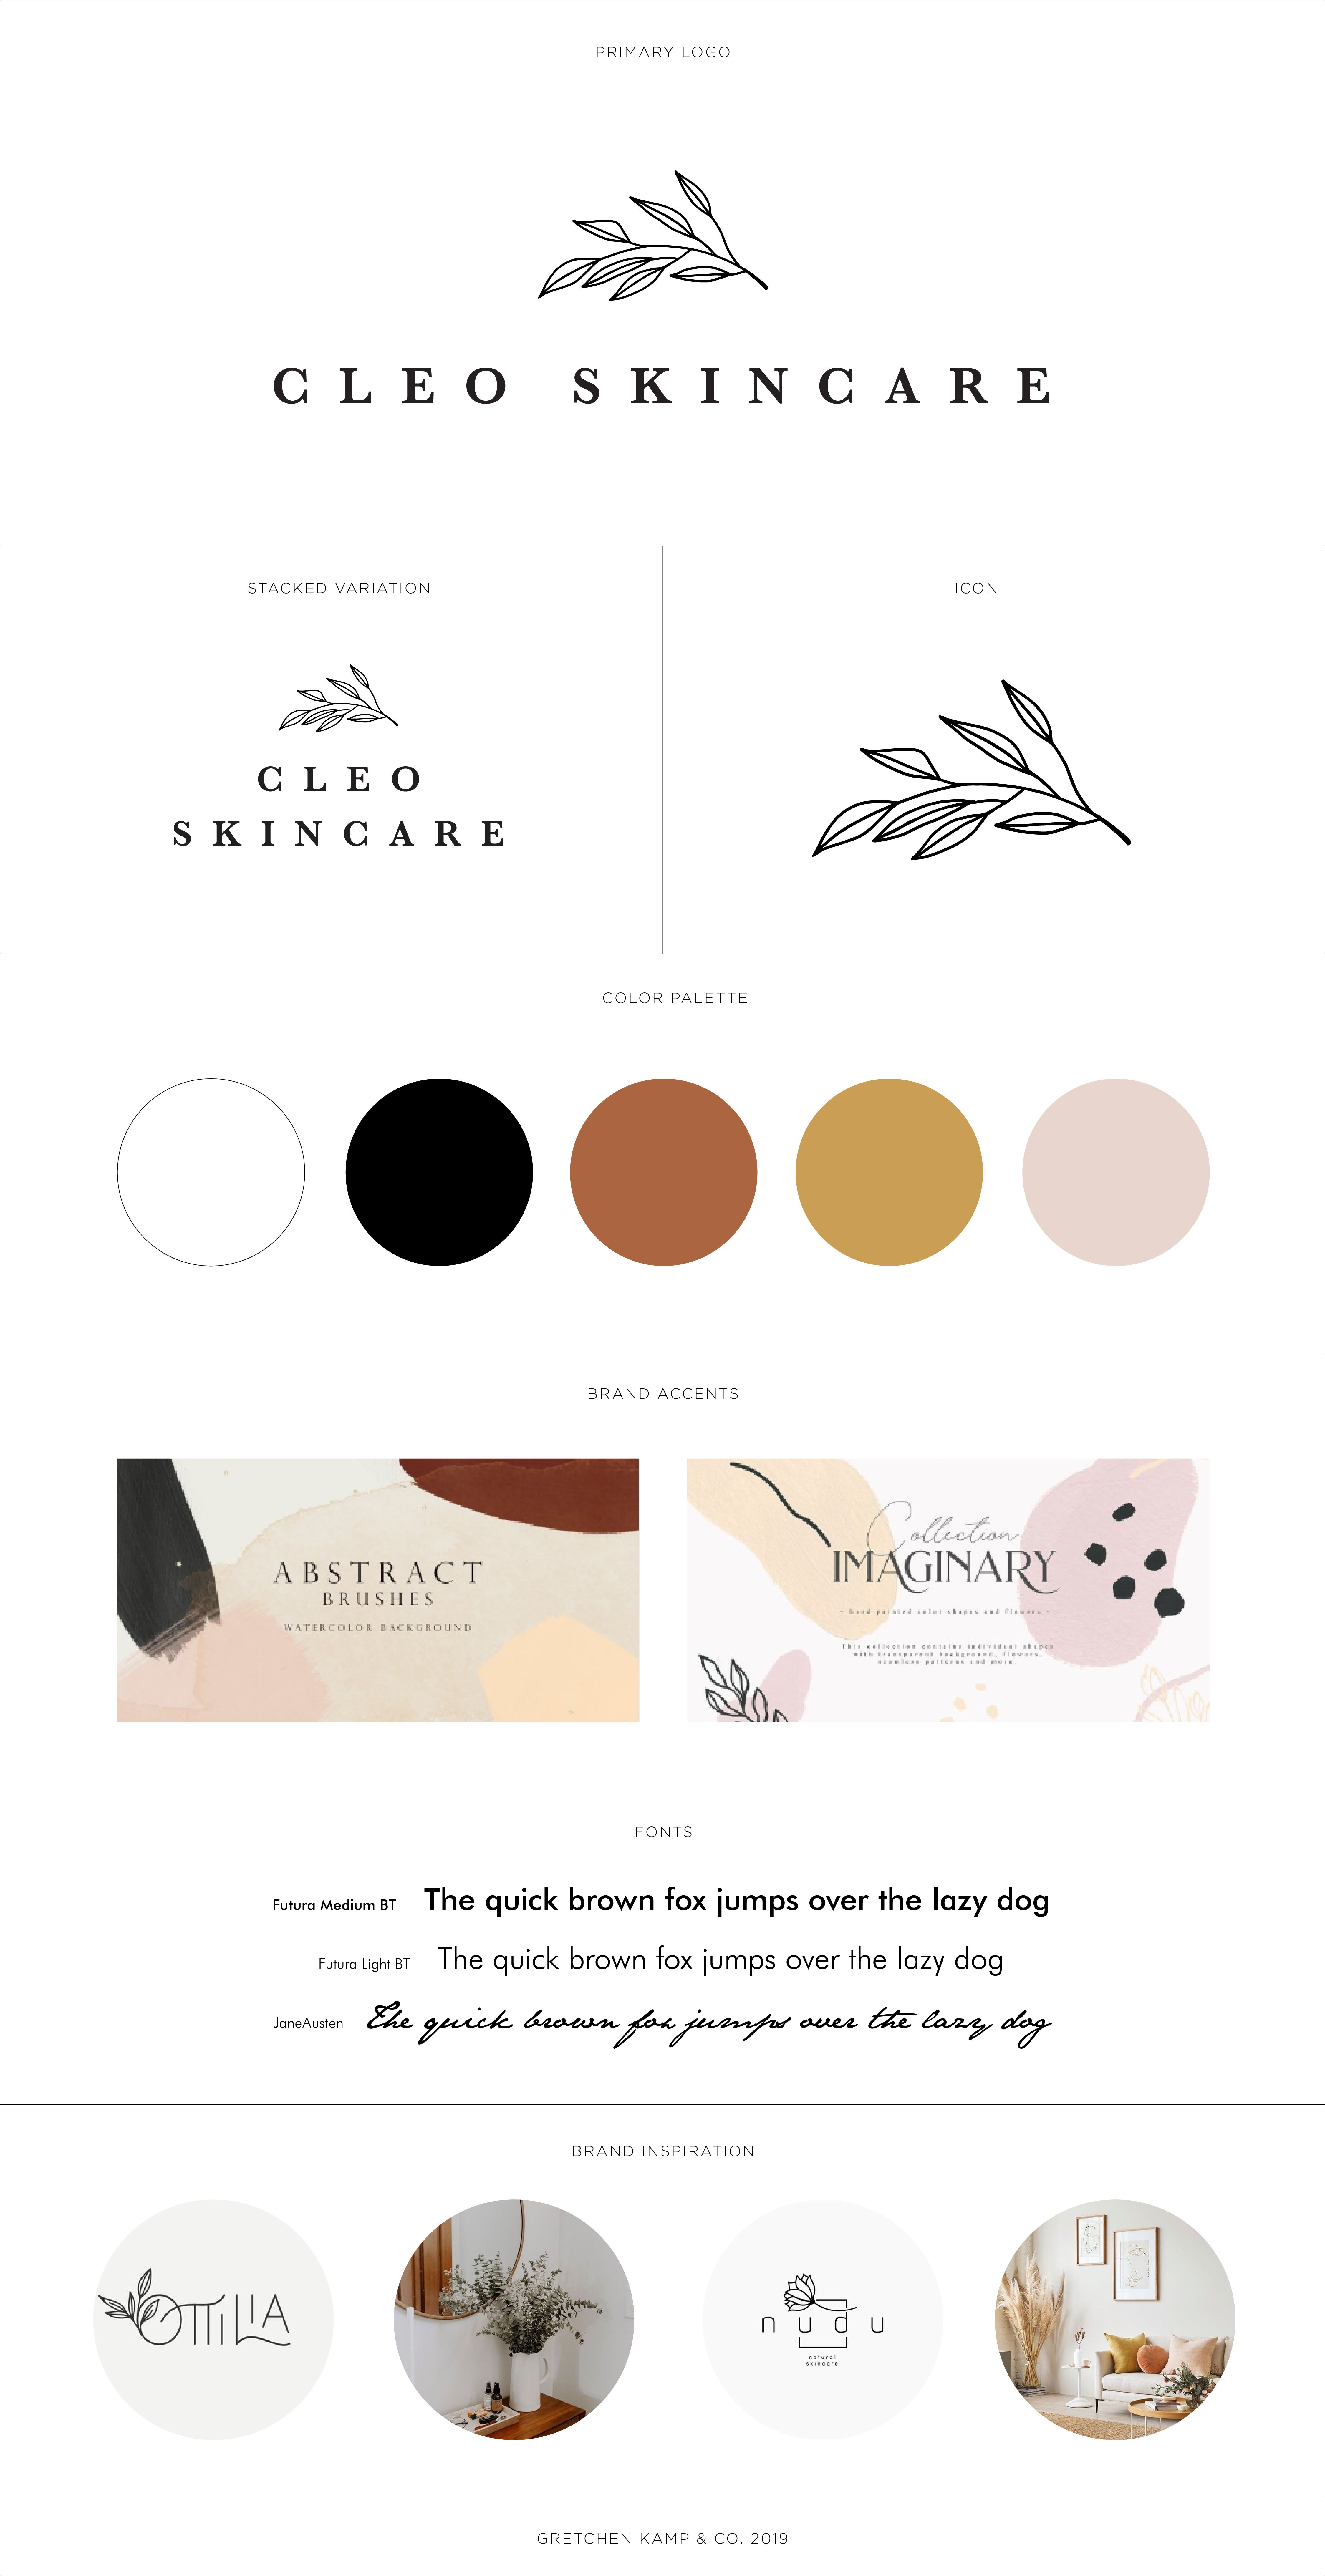 Skincare Branding With Leaf By Branding Specialist Gretchen Kamp In San Diego Ca Skincare Branding Website Branding Branding Website Design